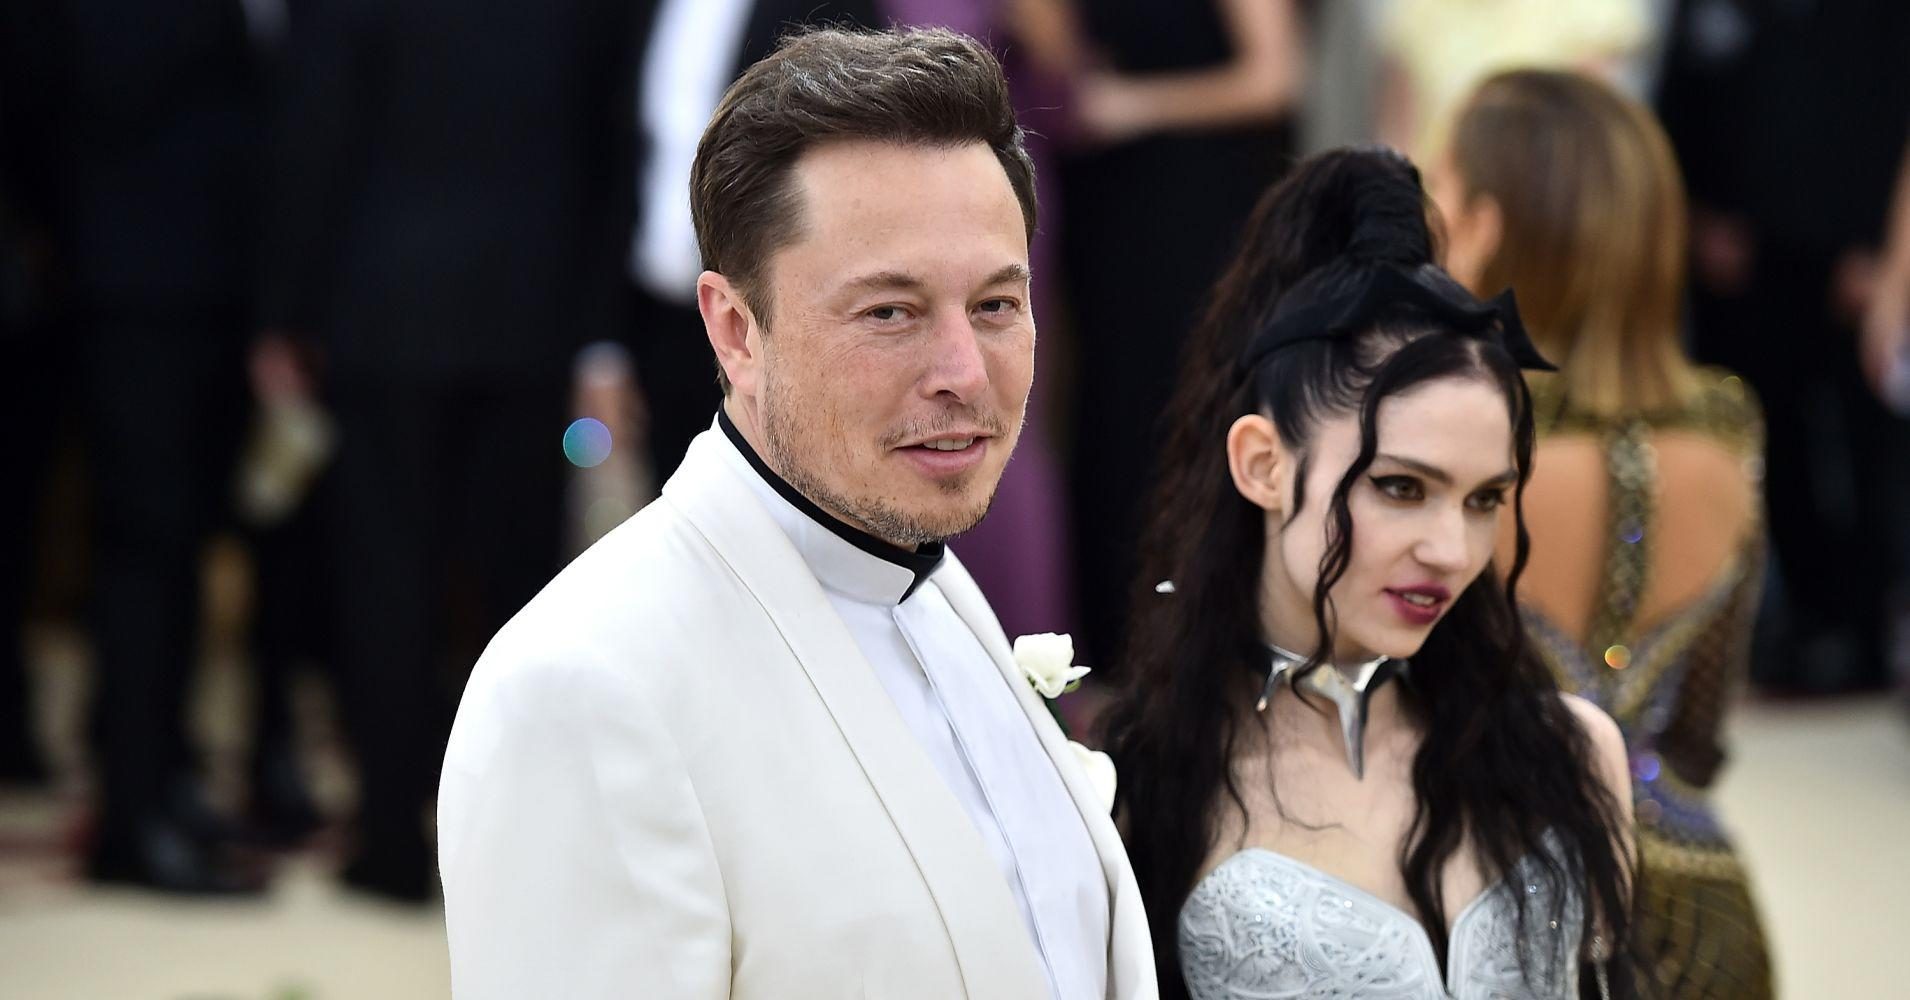 Elon Musk wants to keep ex-girlfriend Grimes out of an investor